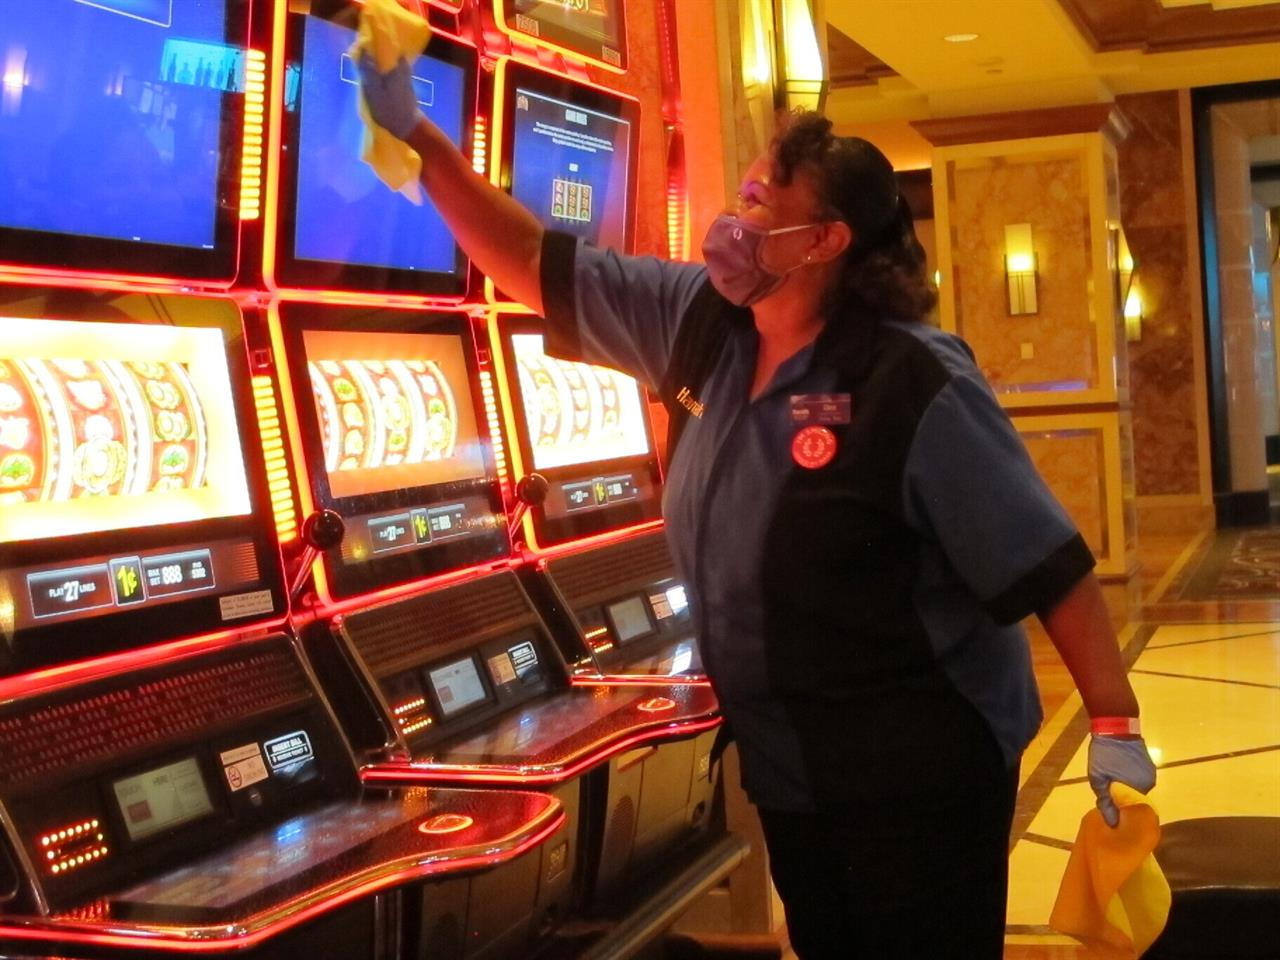 Atlantic City casinos reopen in a changed pandemic world